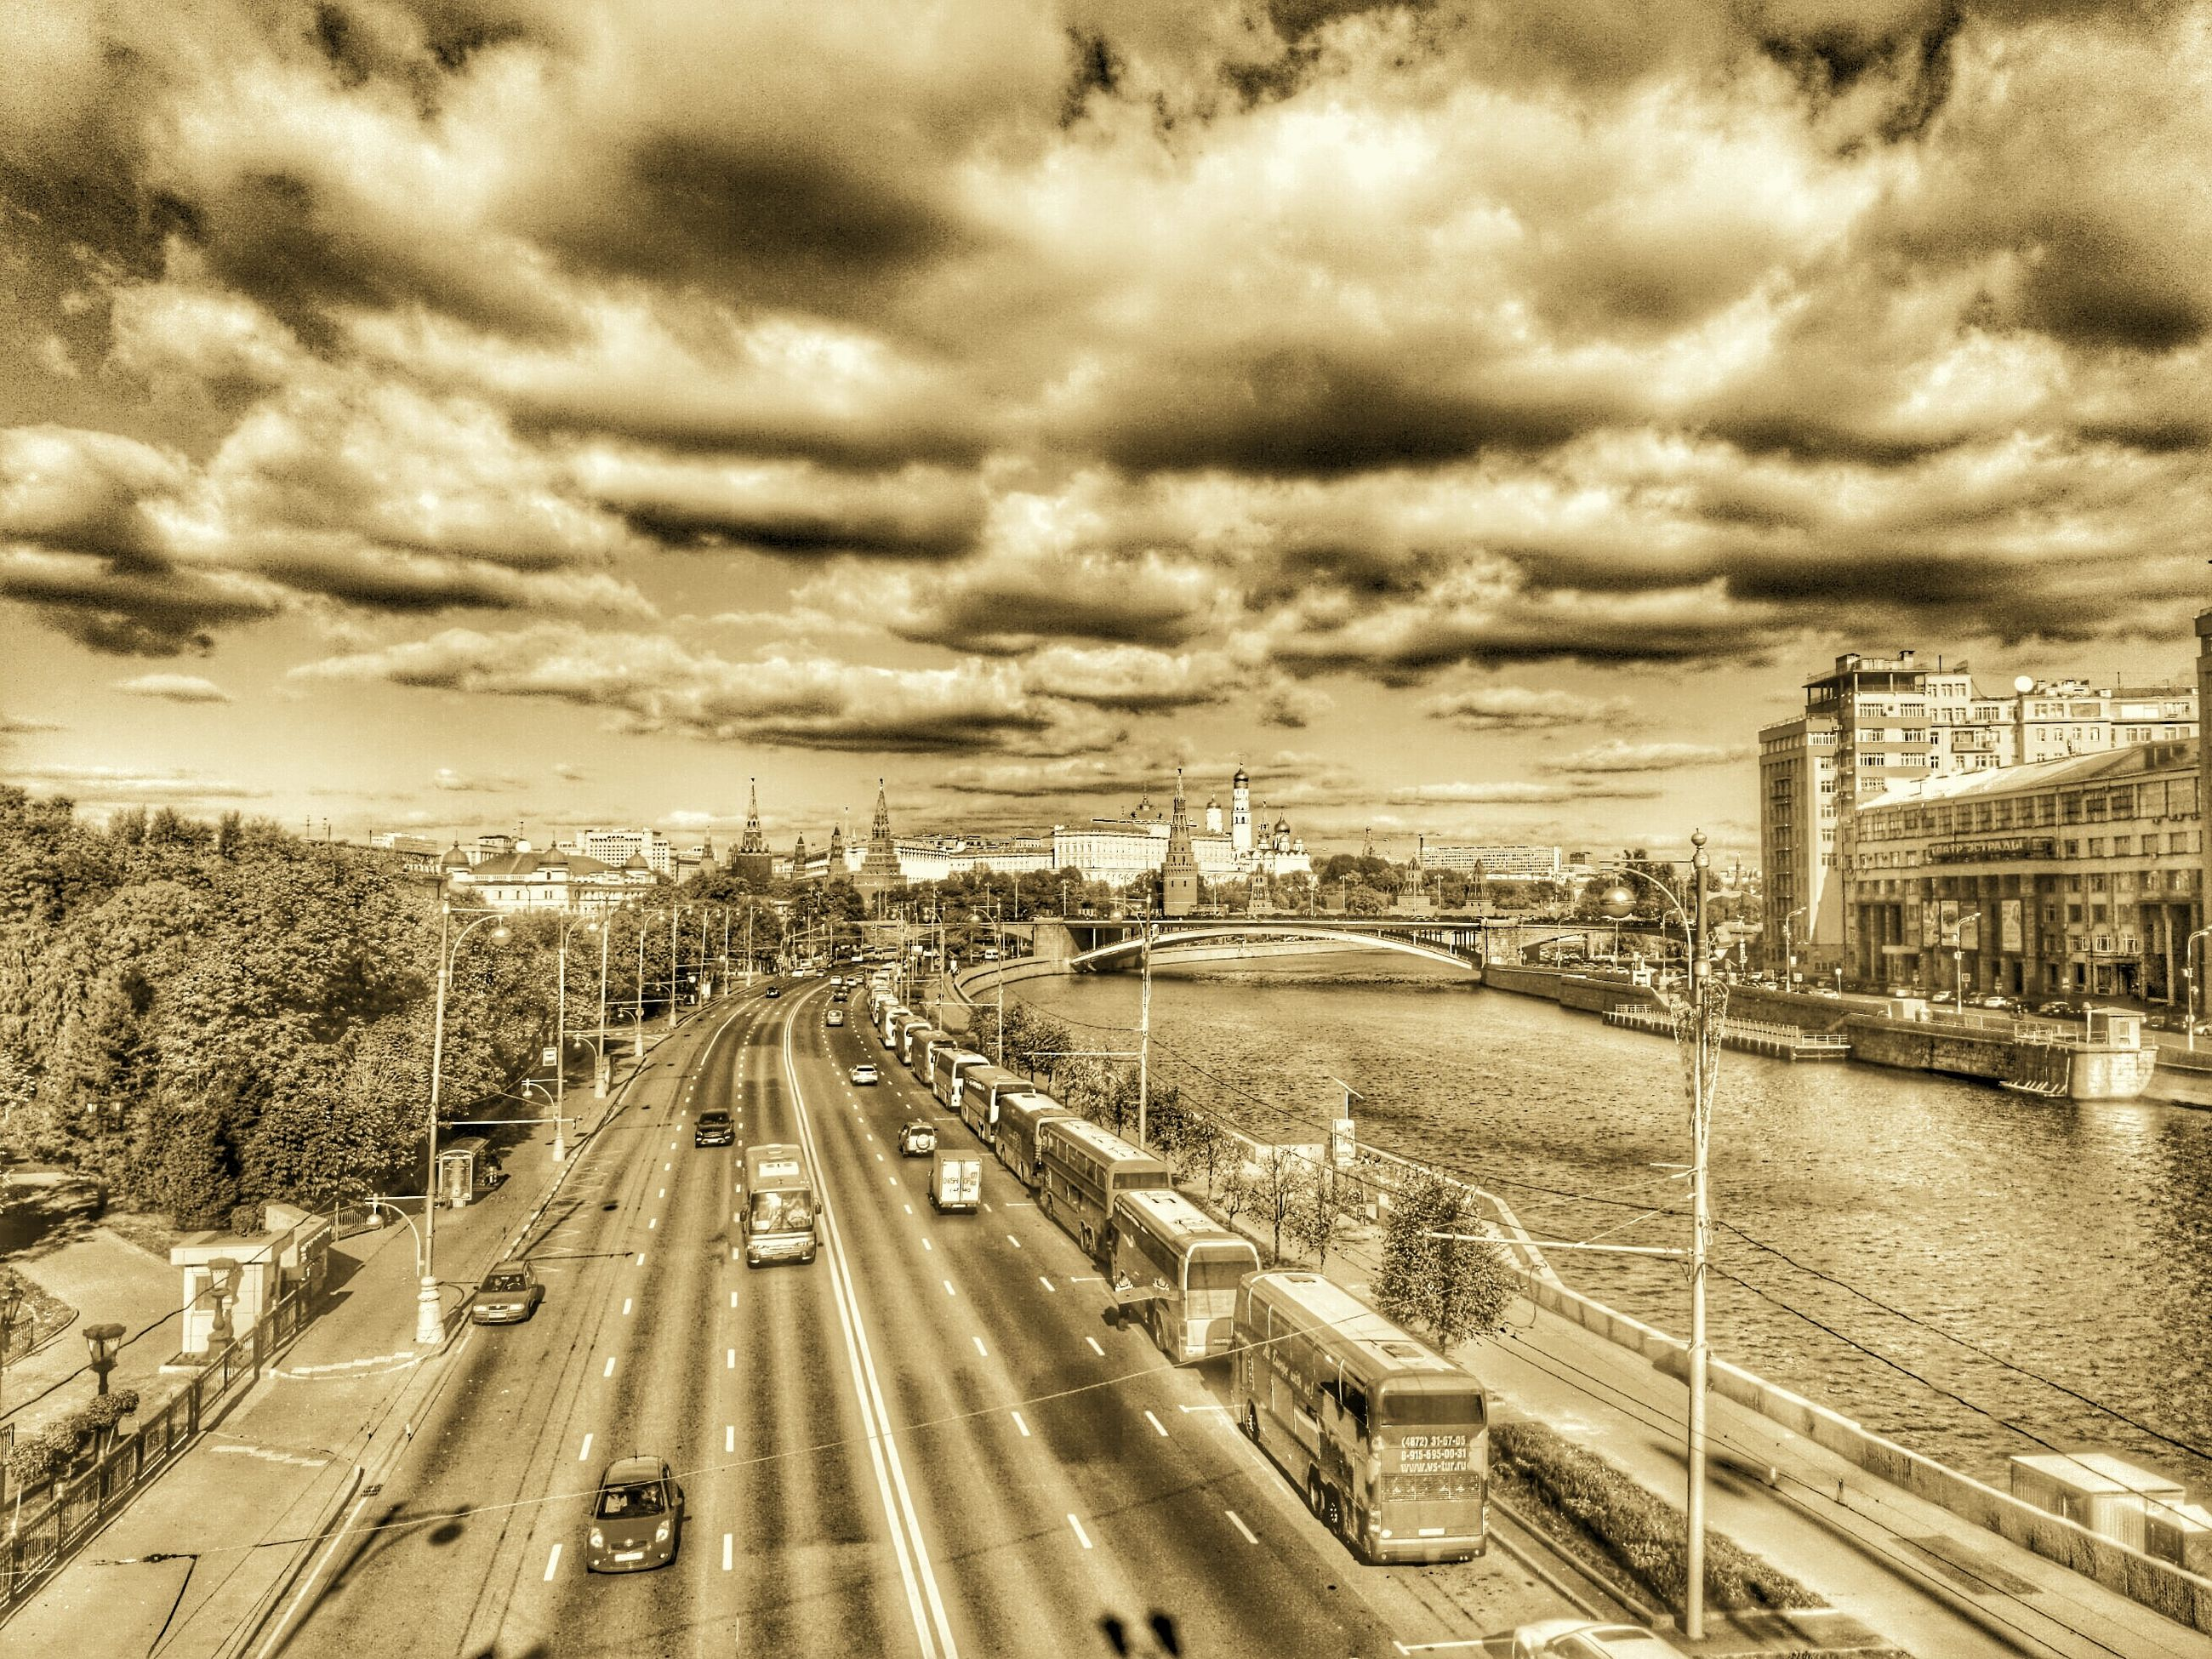 cloud - sky, sky, cloudy, architecture, building exterior, built structure, transportation, city, weather, high angle view, overcast, road, the way forward, water, car, street, cityscape, cloud, diminishing perspective, storm cloud